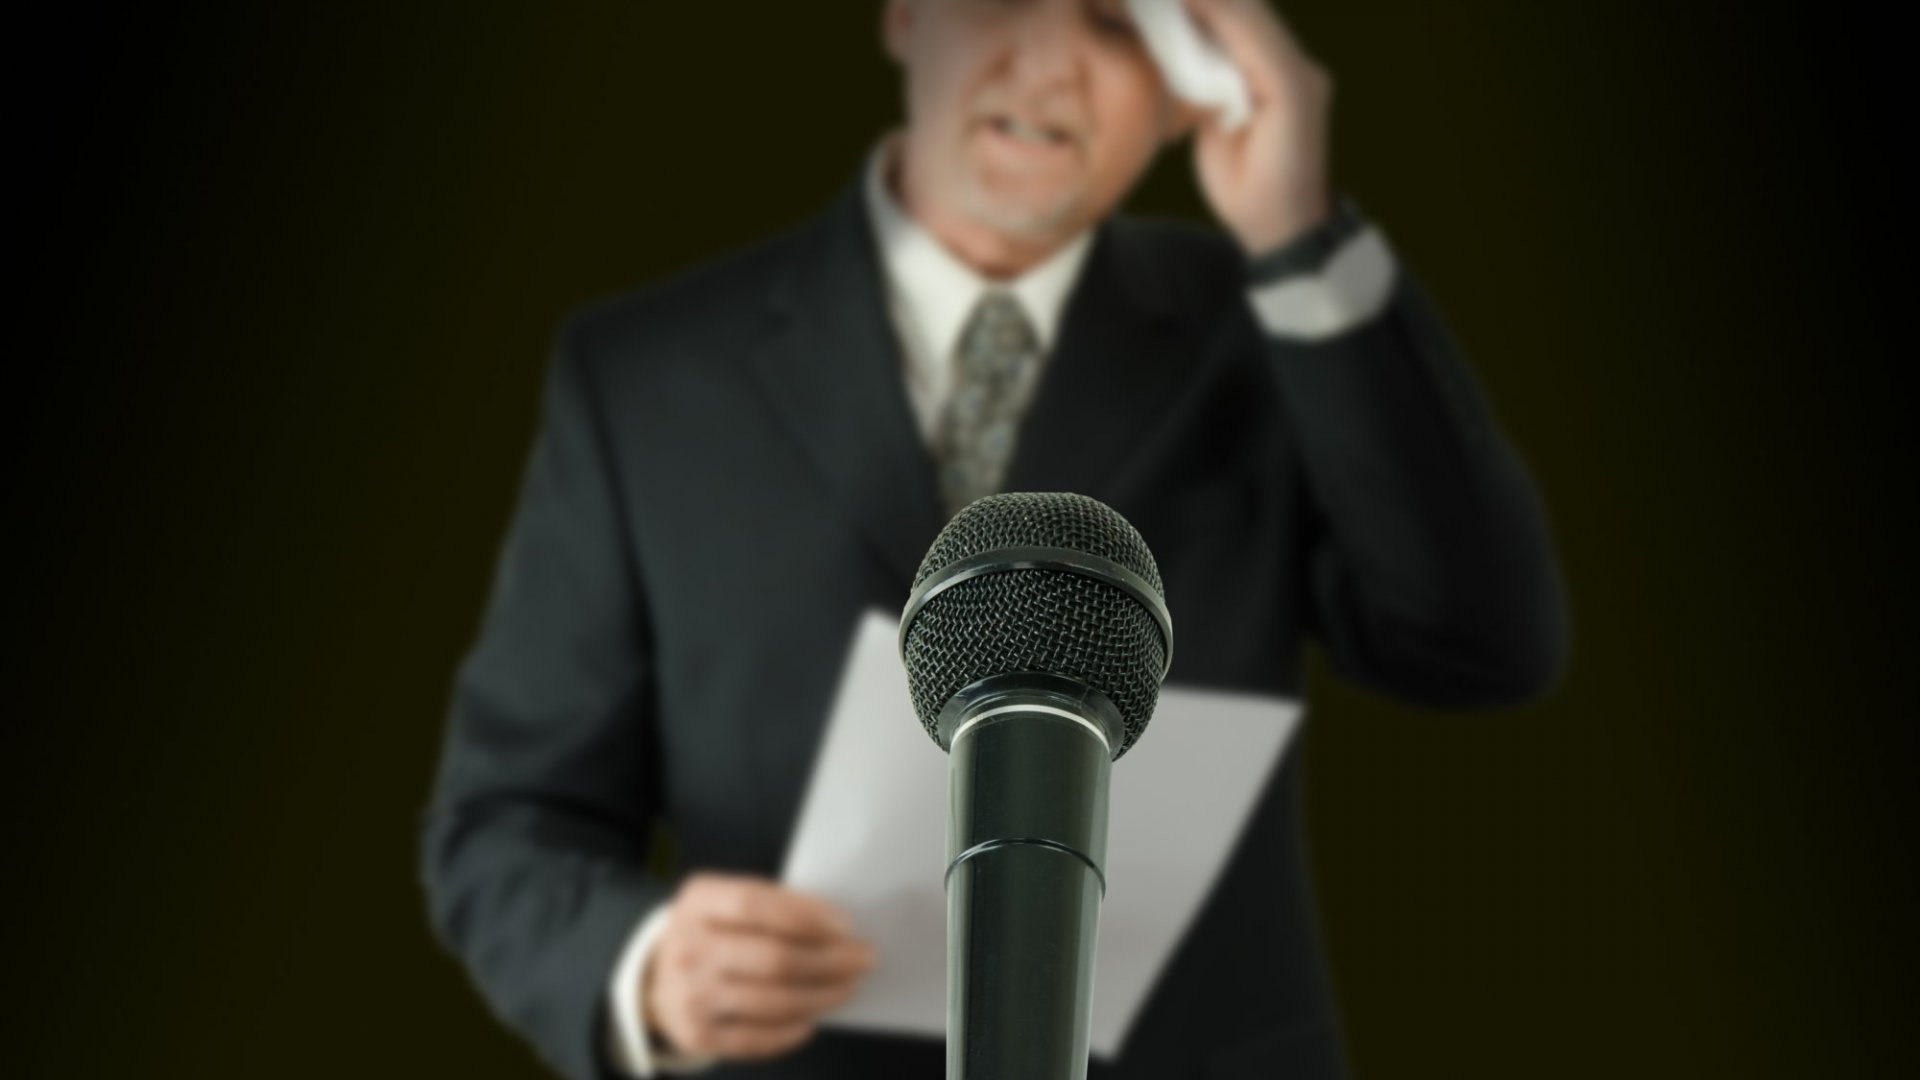 4 Common Mistakes Public Speakers Make